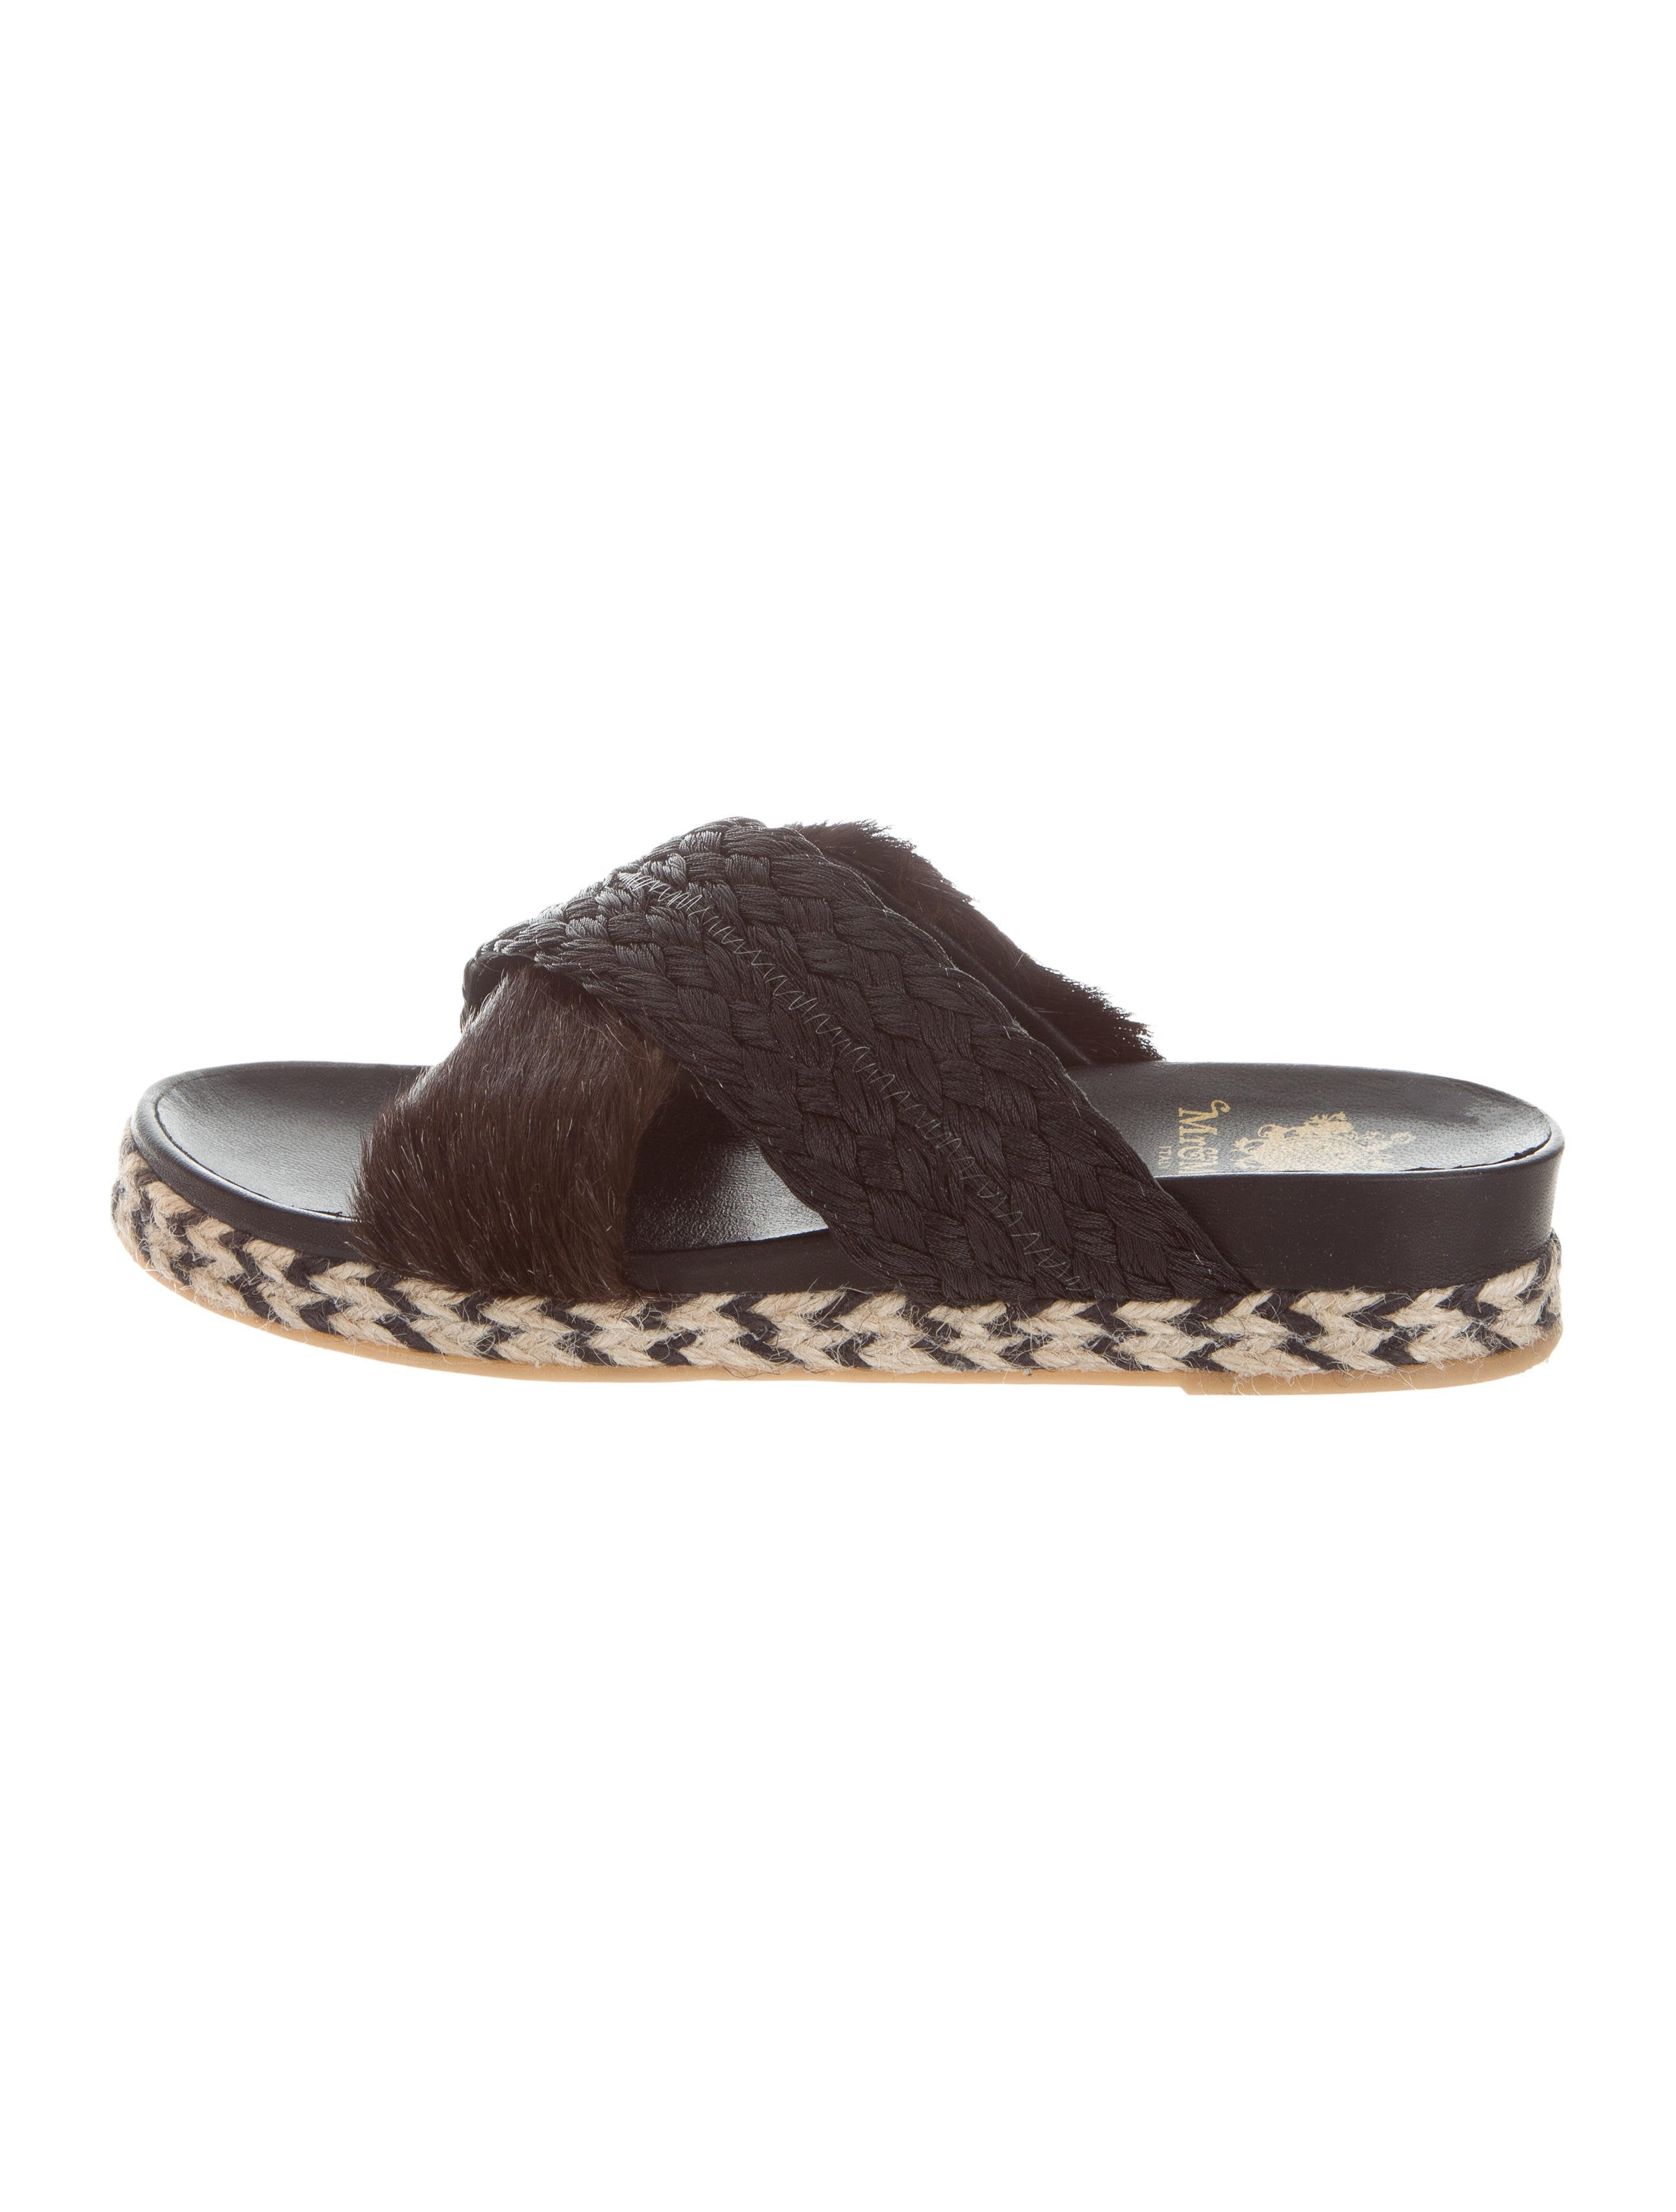 Mr & Mrs Italy Fur Espadrille Sandals discount marketable outlet sneakernews with mastercard cheap price ZZnAclb68